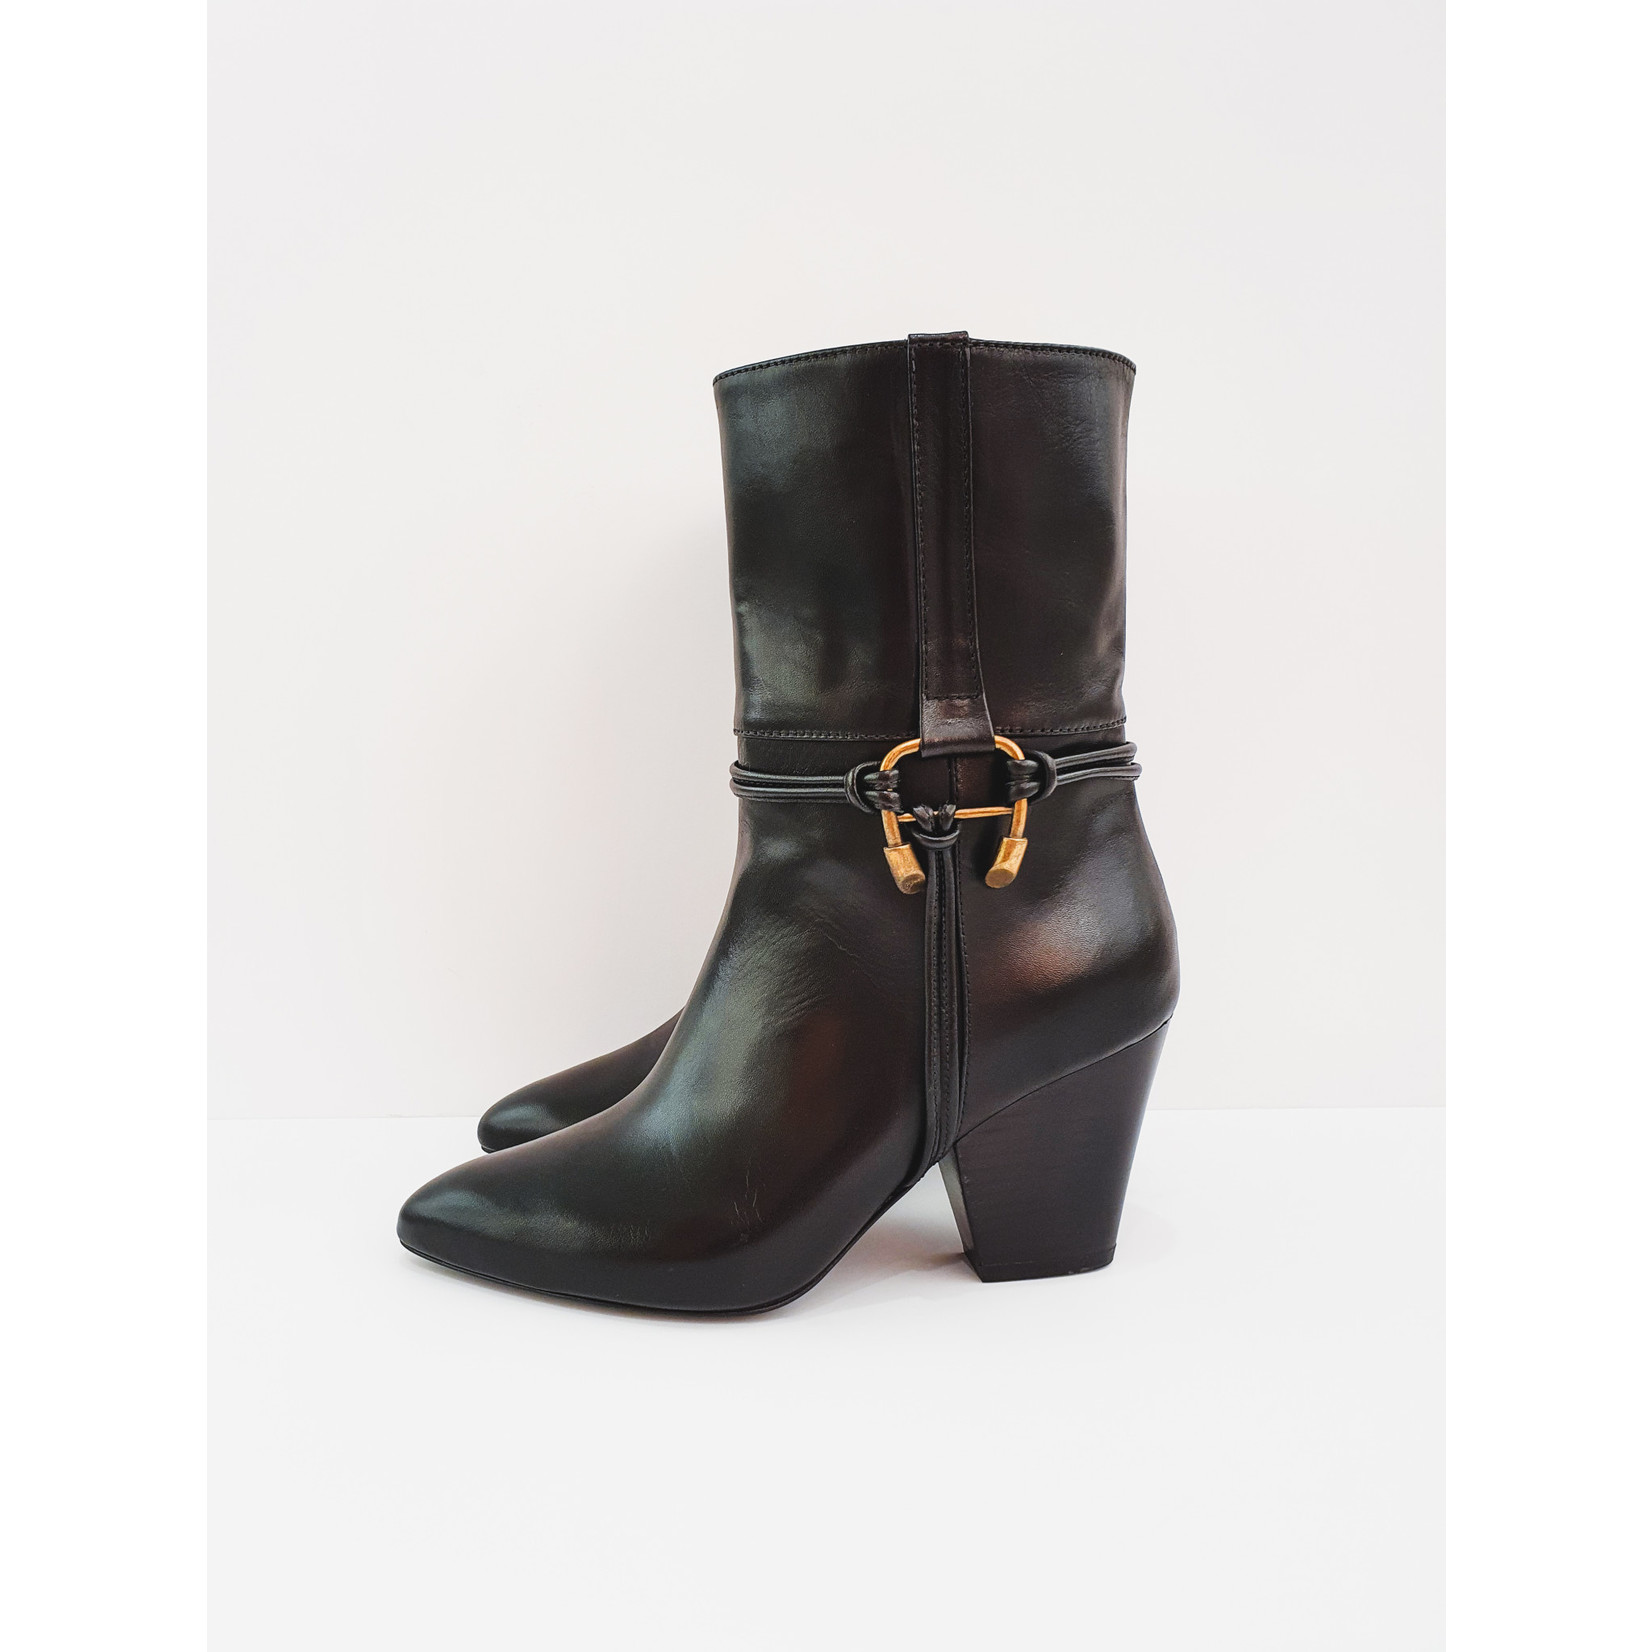 Perfect black boots